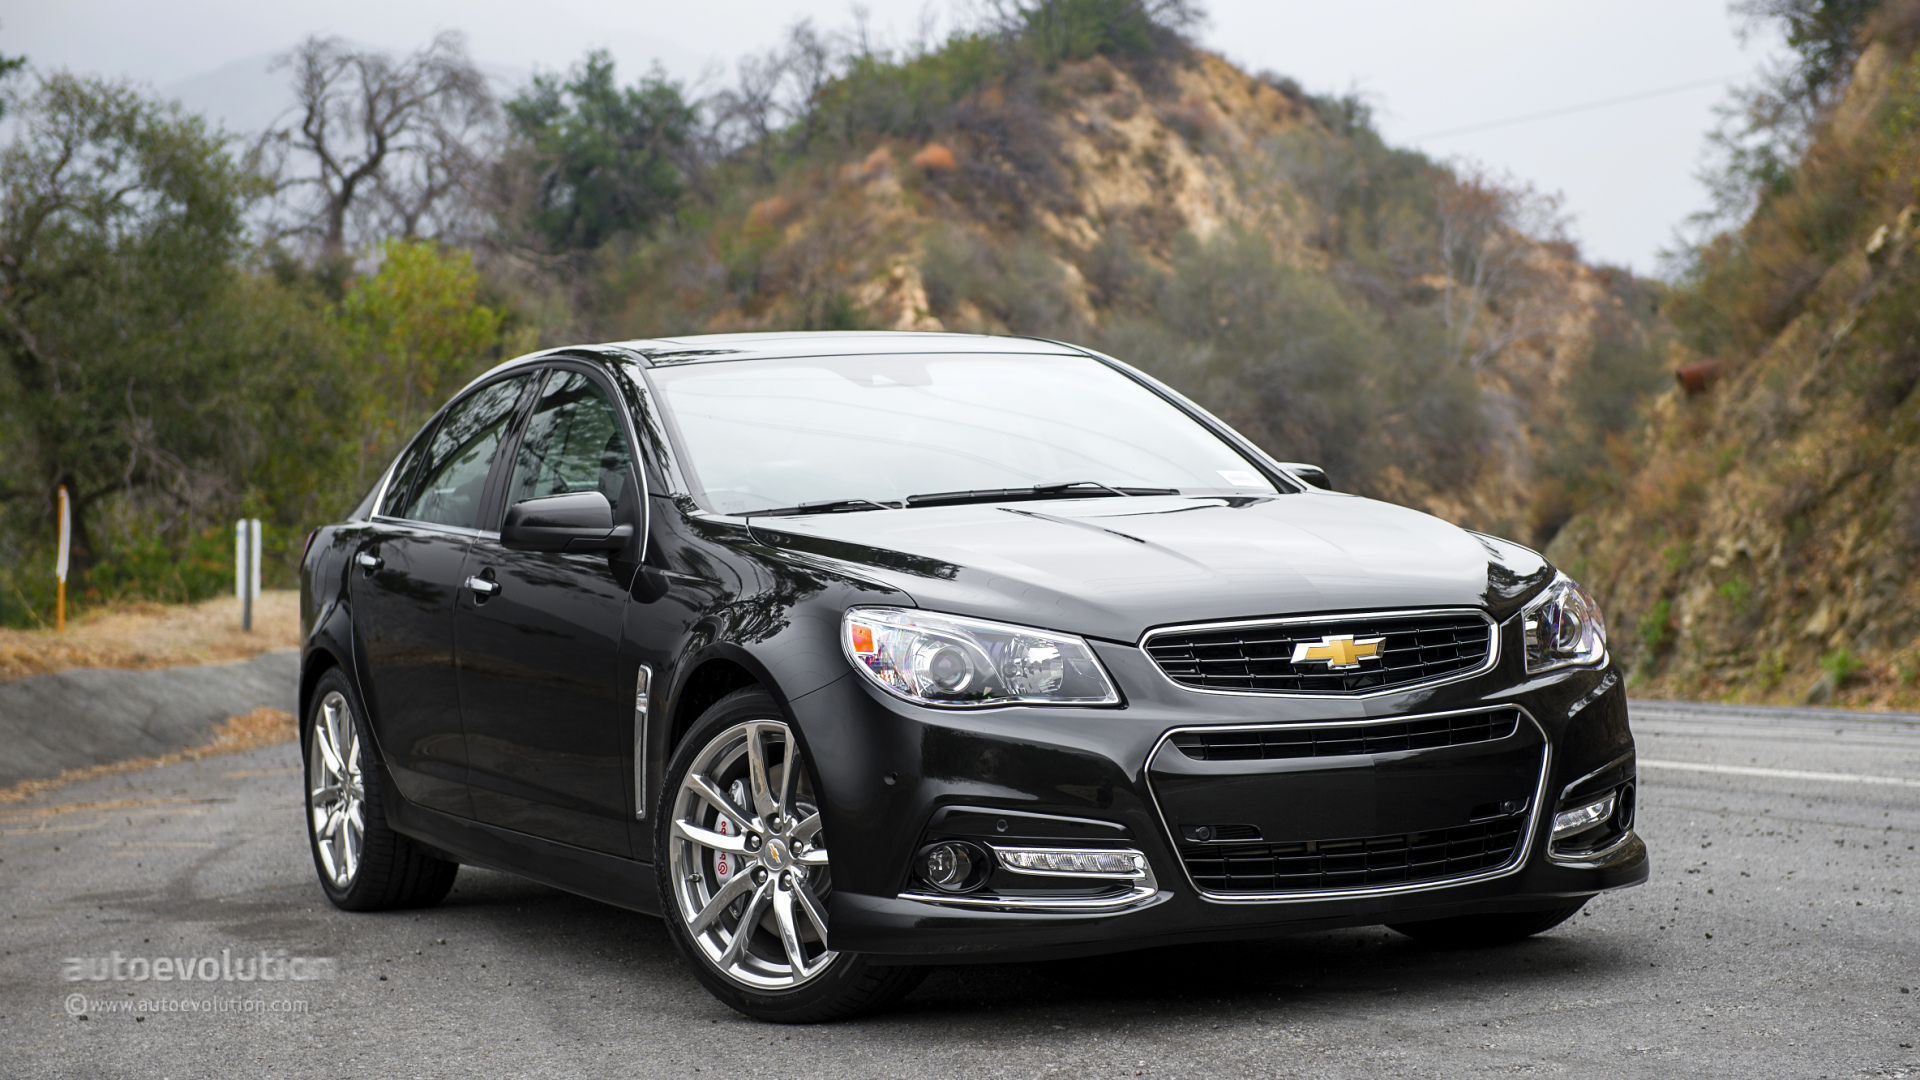 chevy ss wallpaper - photo #3